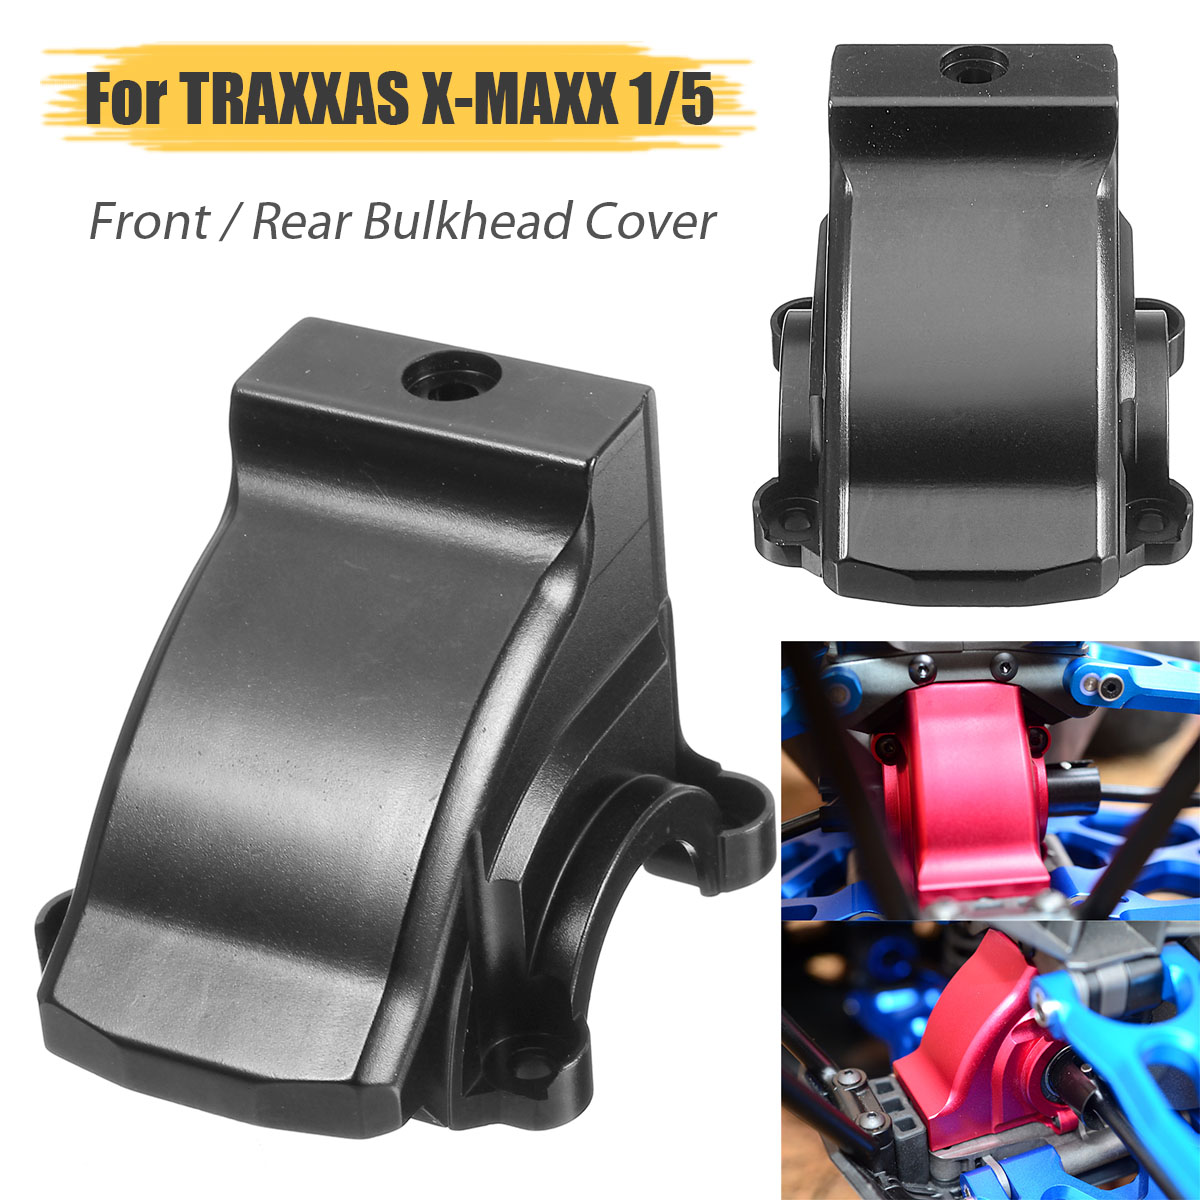 цена на TRAXXAS X-Maxx Aluminum Alloy Front/Rear Gearbox Cover Racing Car Bulkhead Cover for TRAXXAS X-MAXX 1/5 Rc Car Parts Black